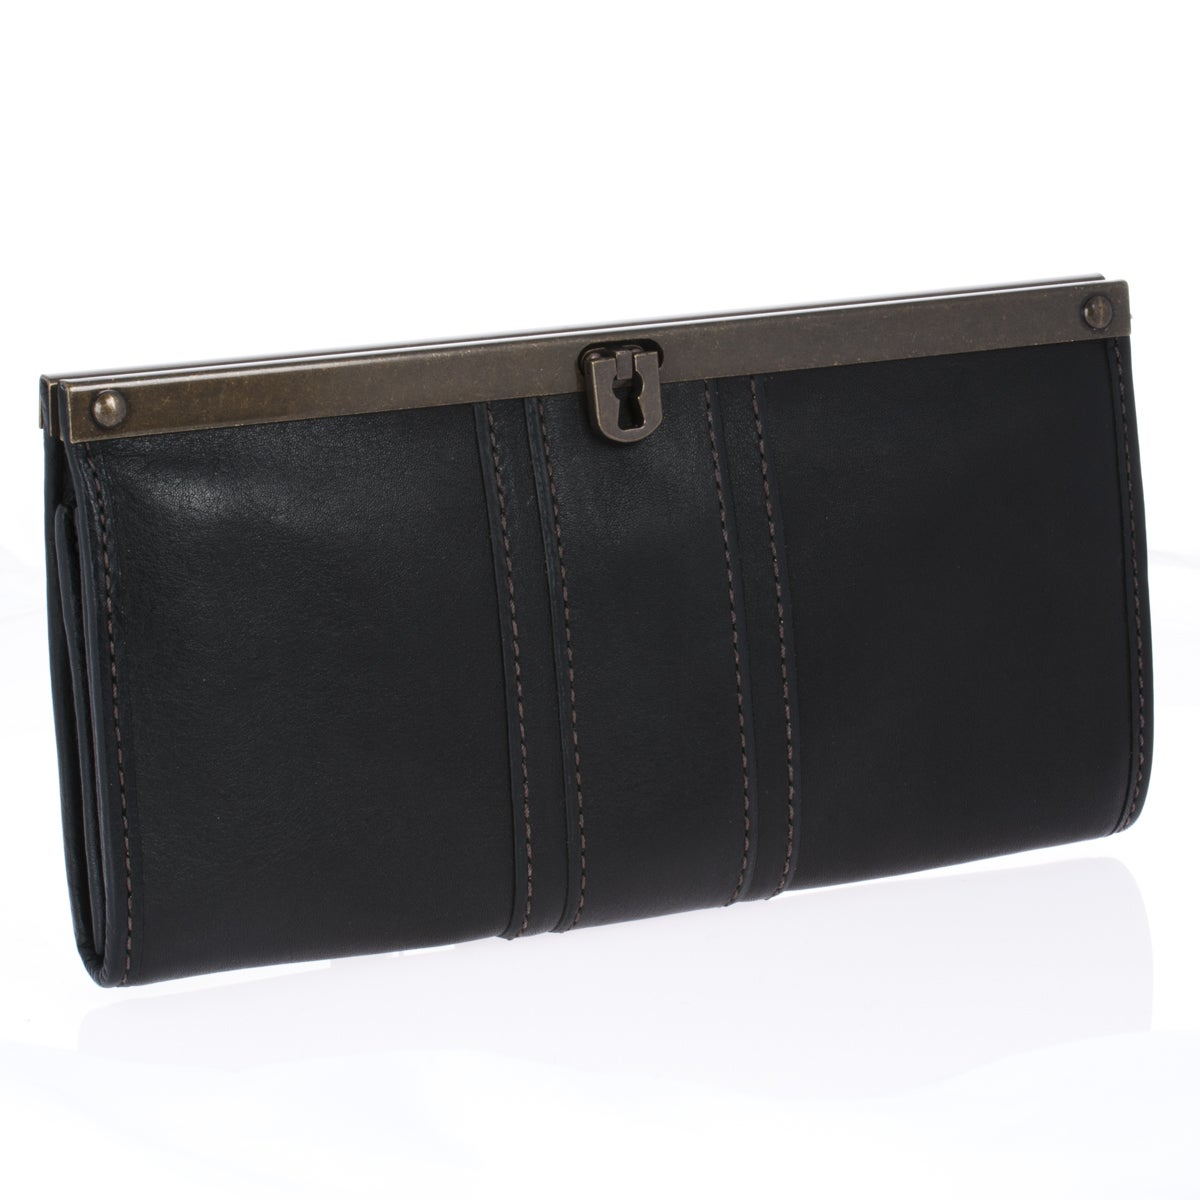 Fossil Women's 'Vintage Re-issue' Leather Clutch